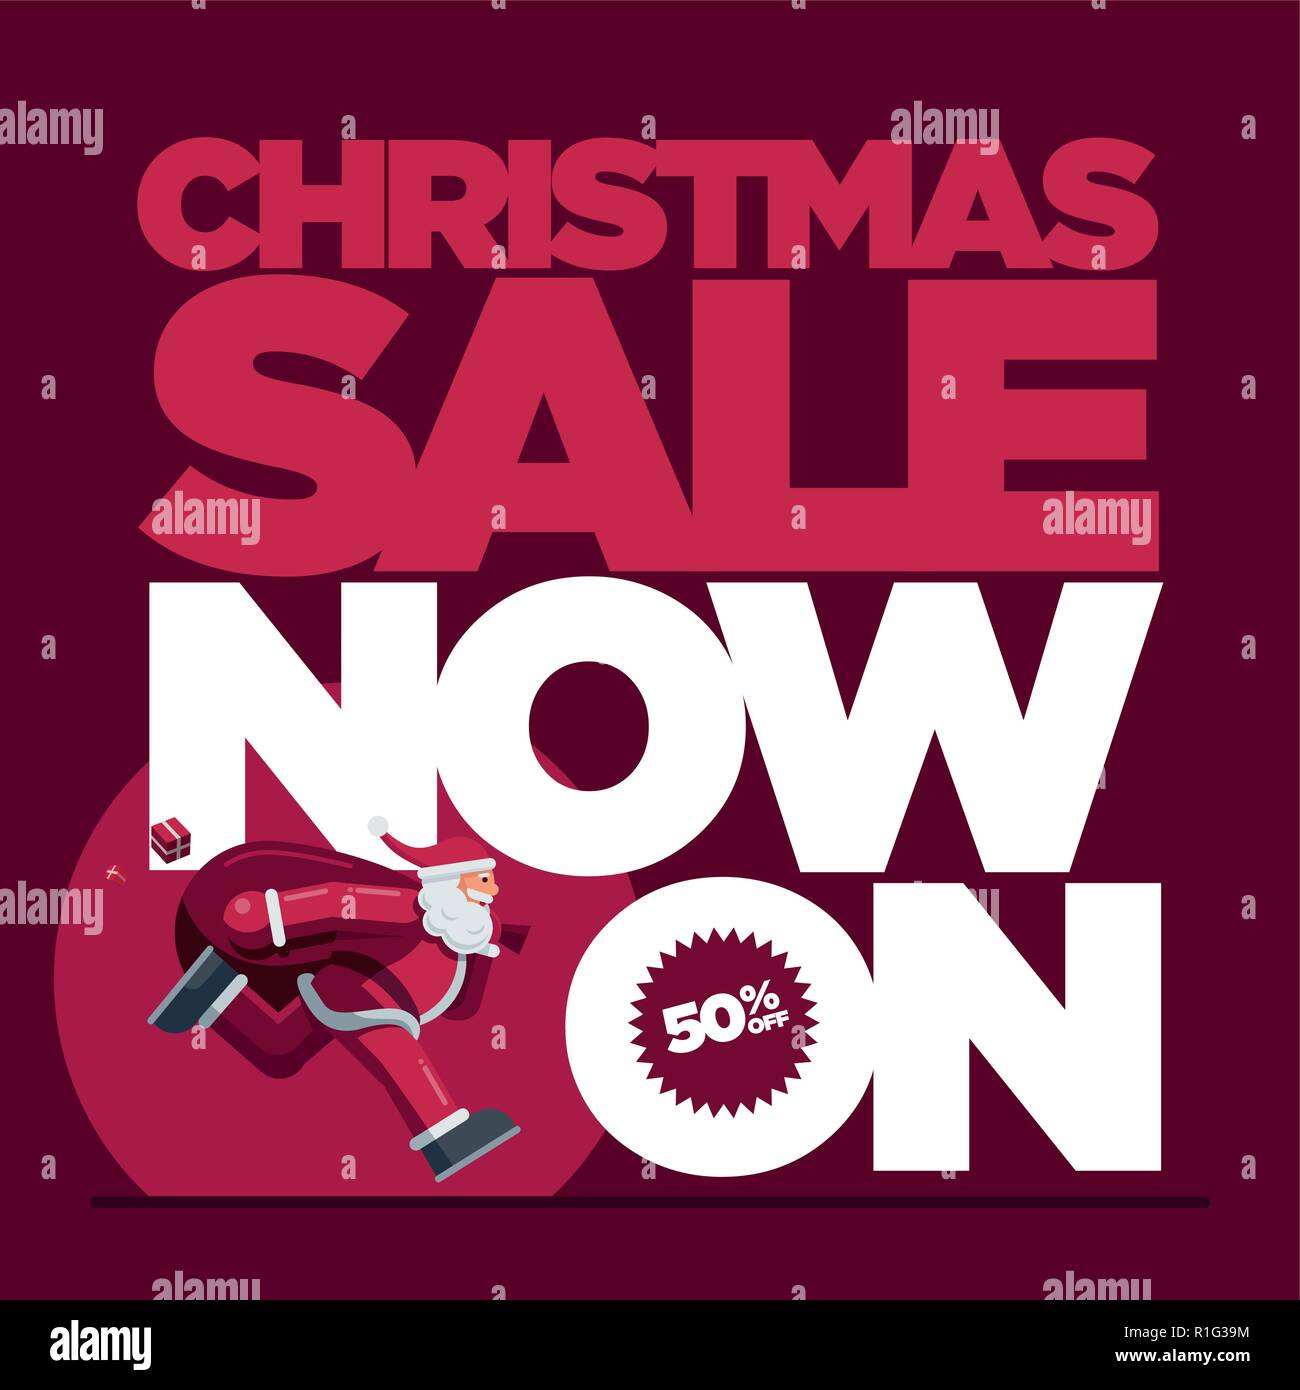 Vector Christmas design with Santa Claus illustration. Christmas Sale Concept Design. Best for poster, advert or social media post. - Stock Vector